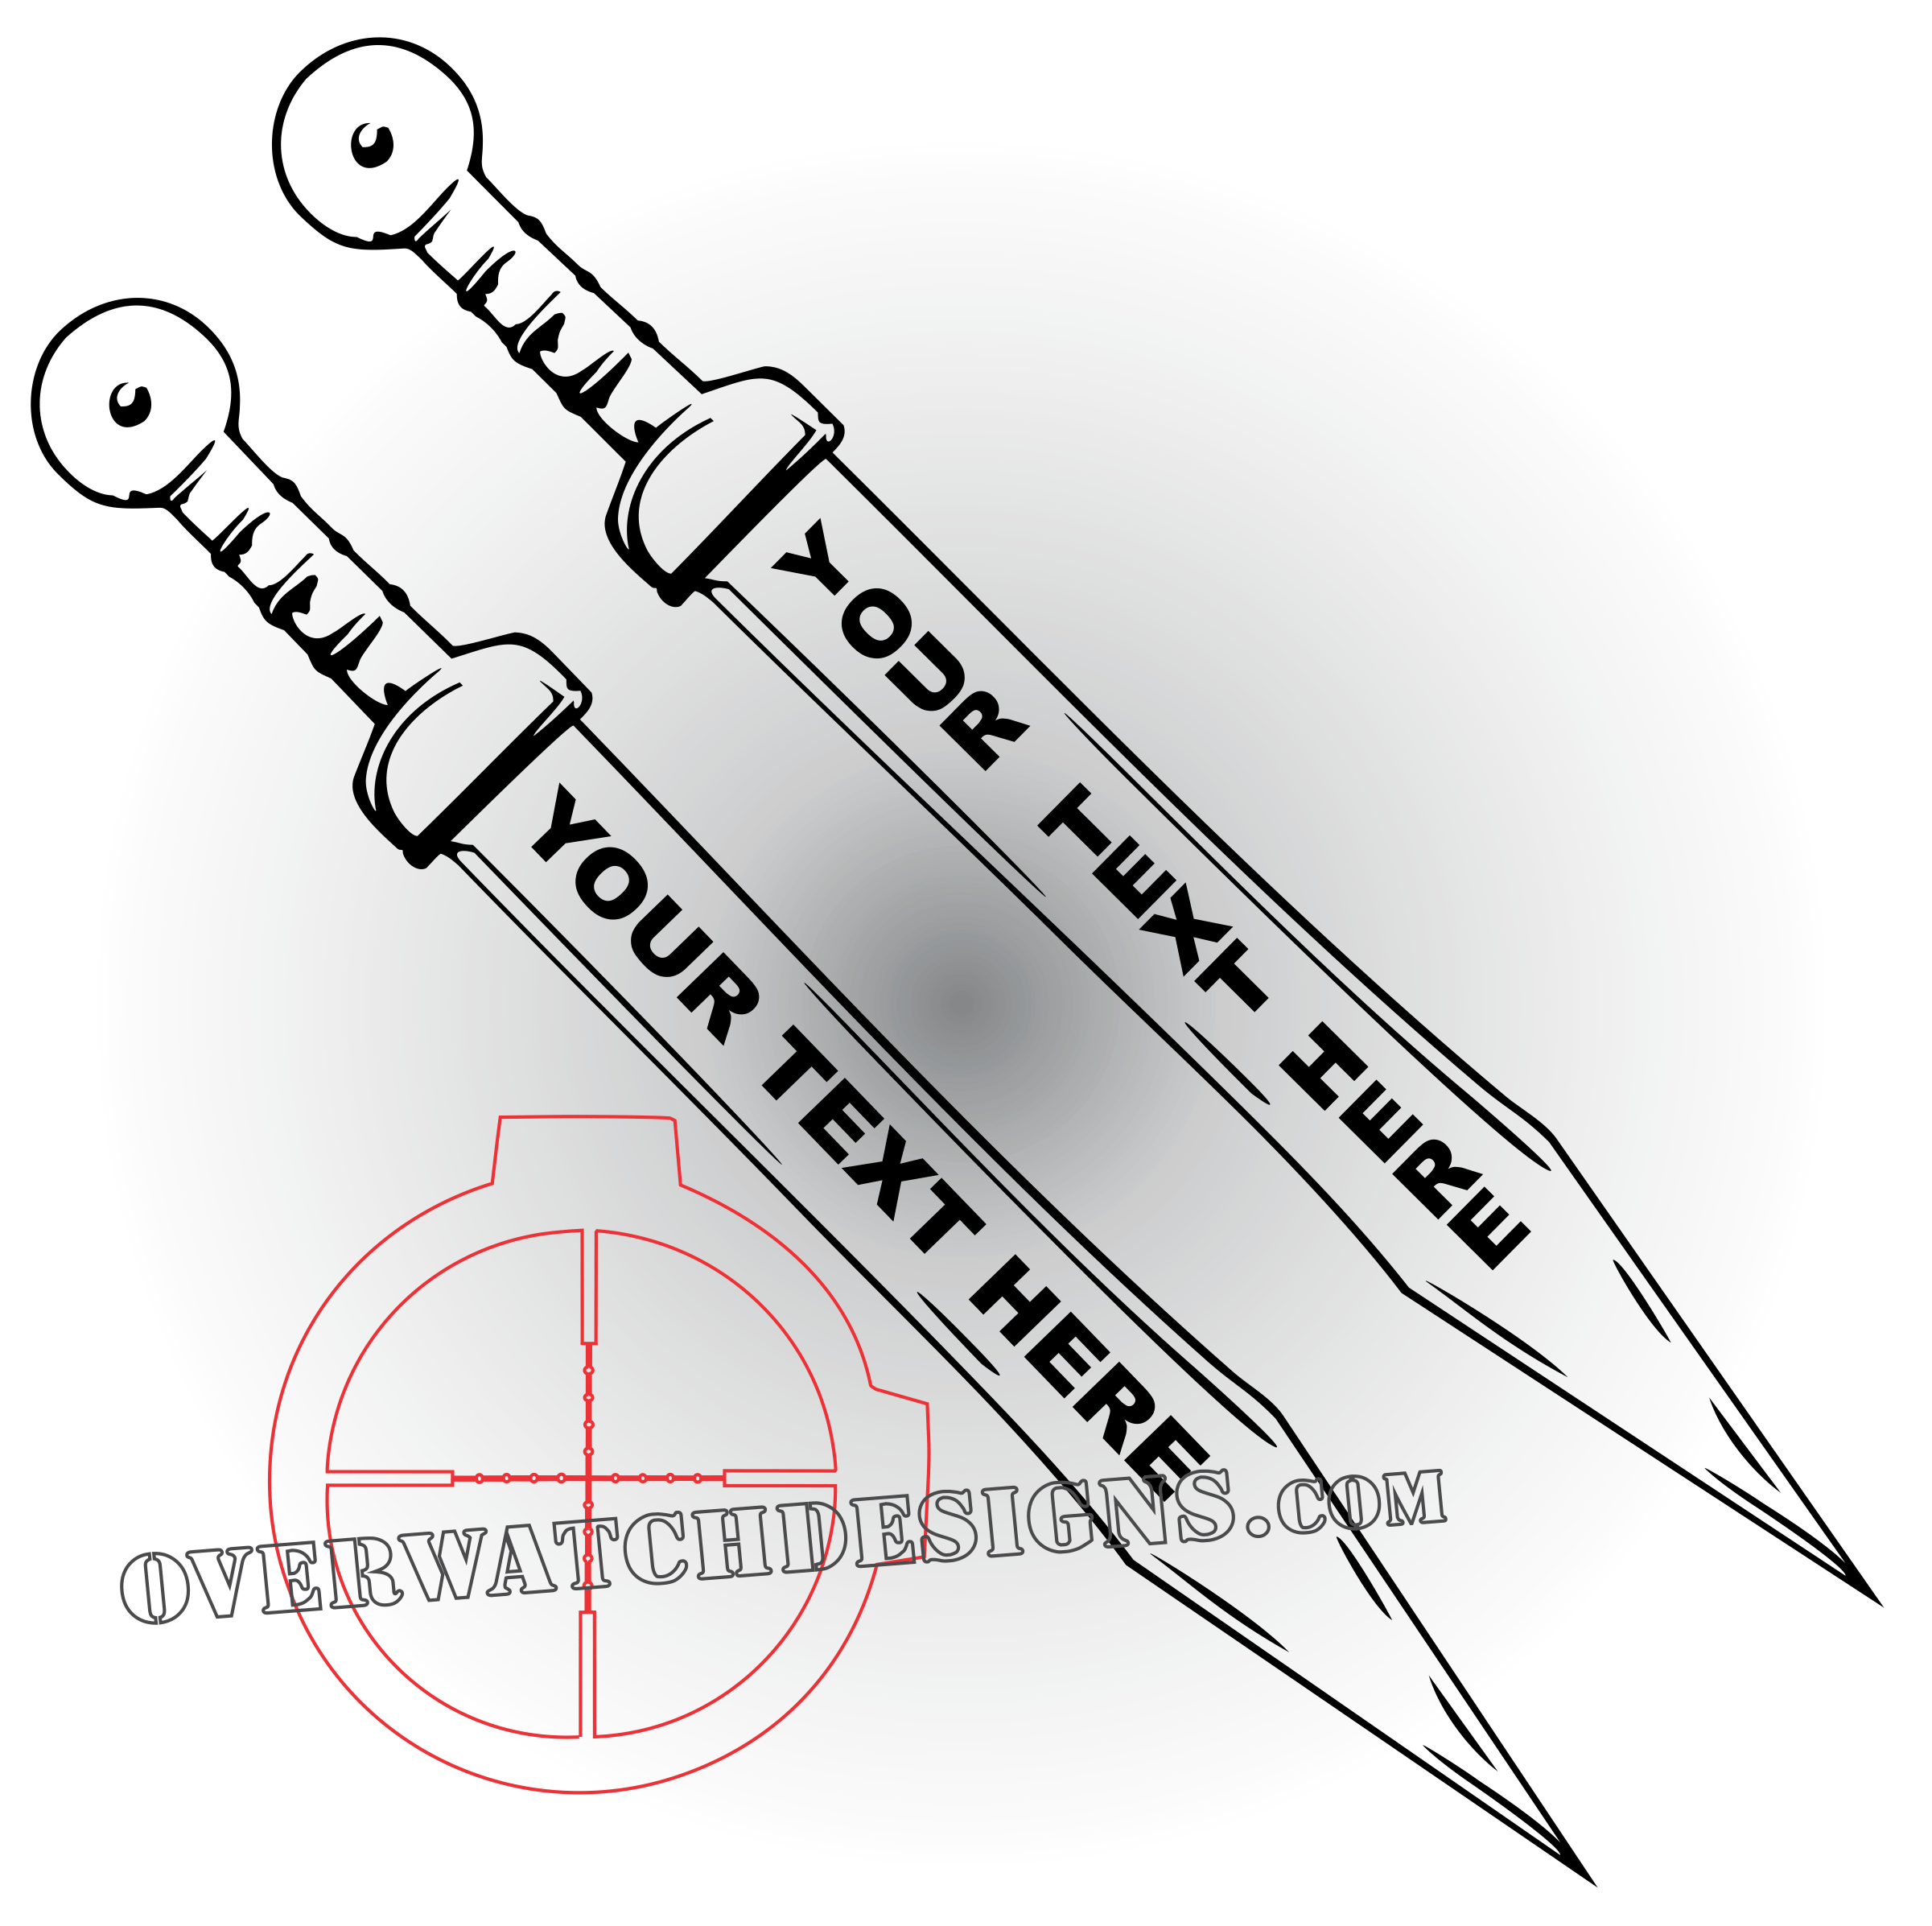 Support drawing sword. Decal with custom text